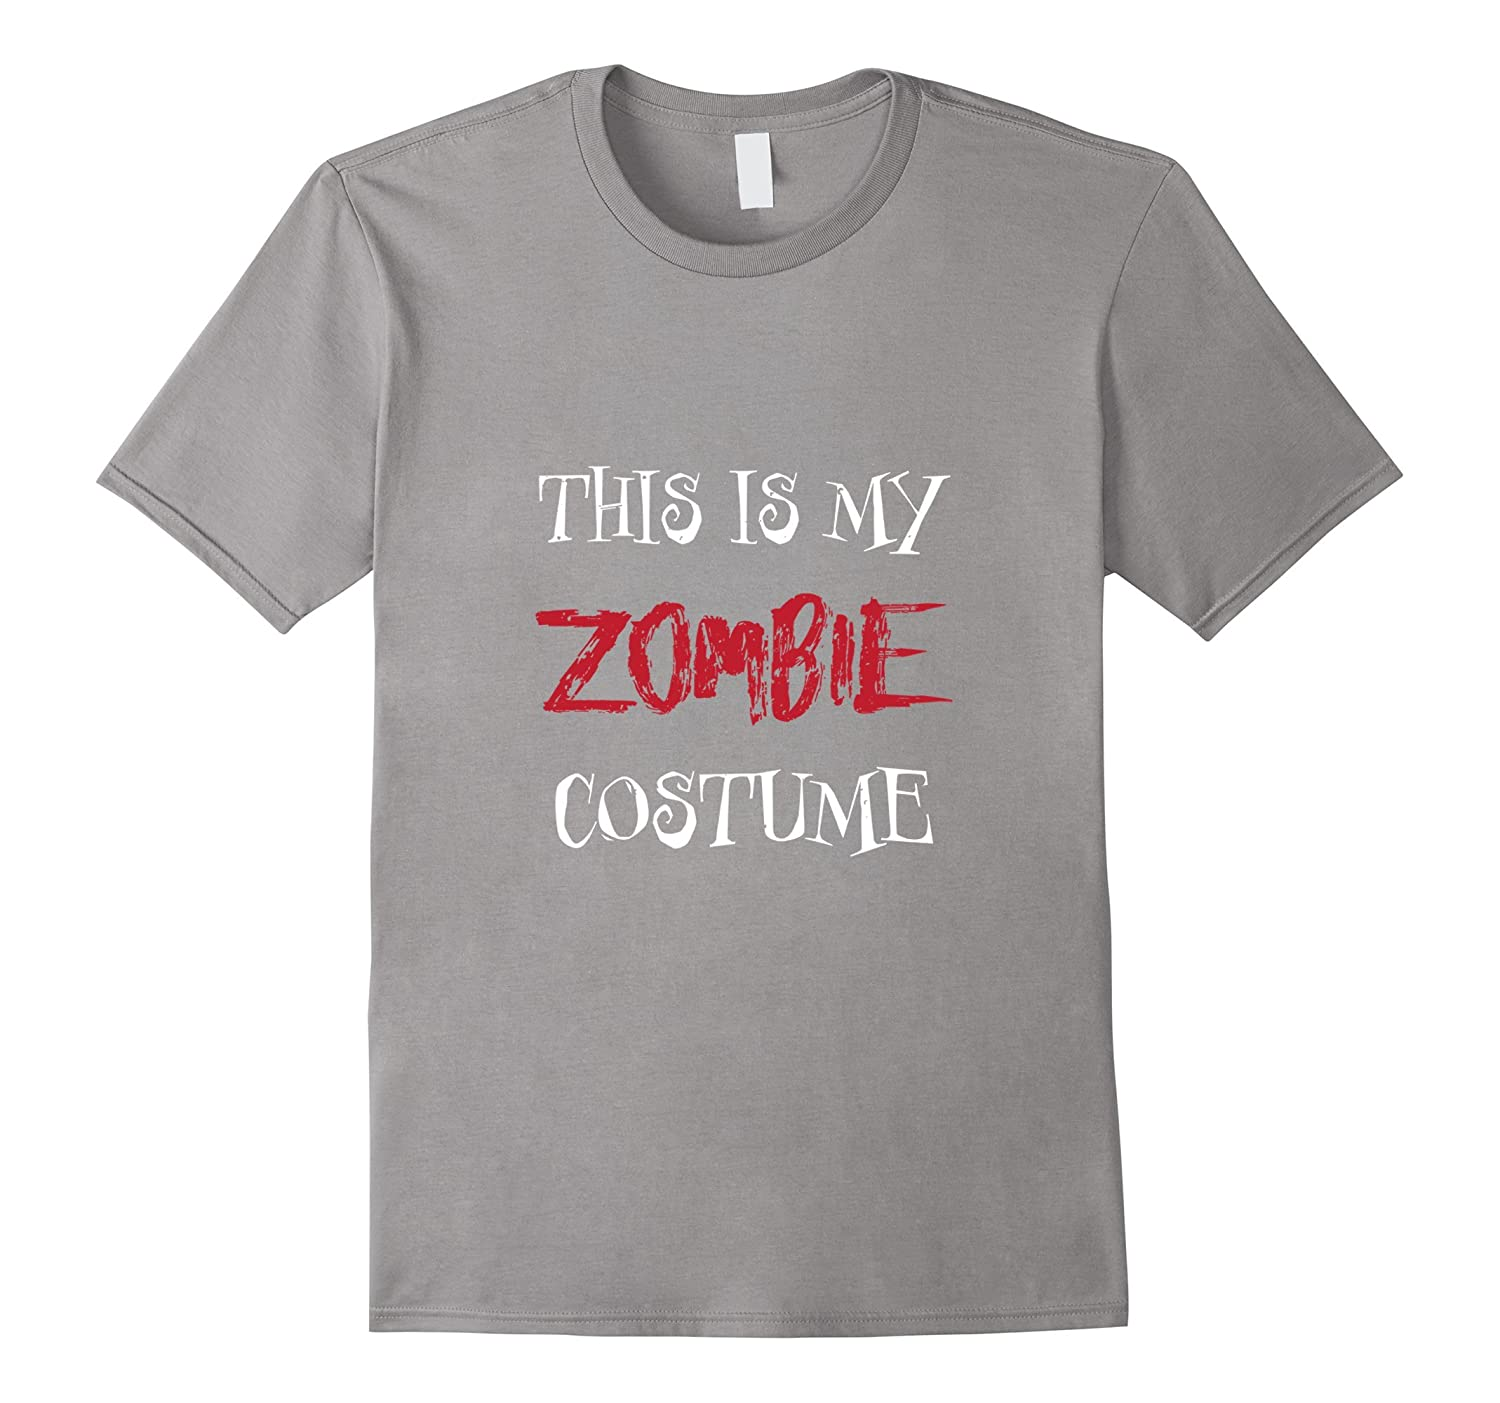 Zombie costume shirt for halloween-TH